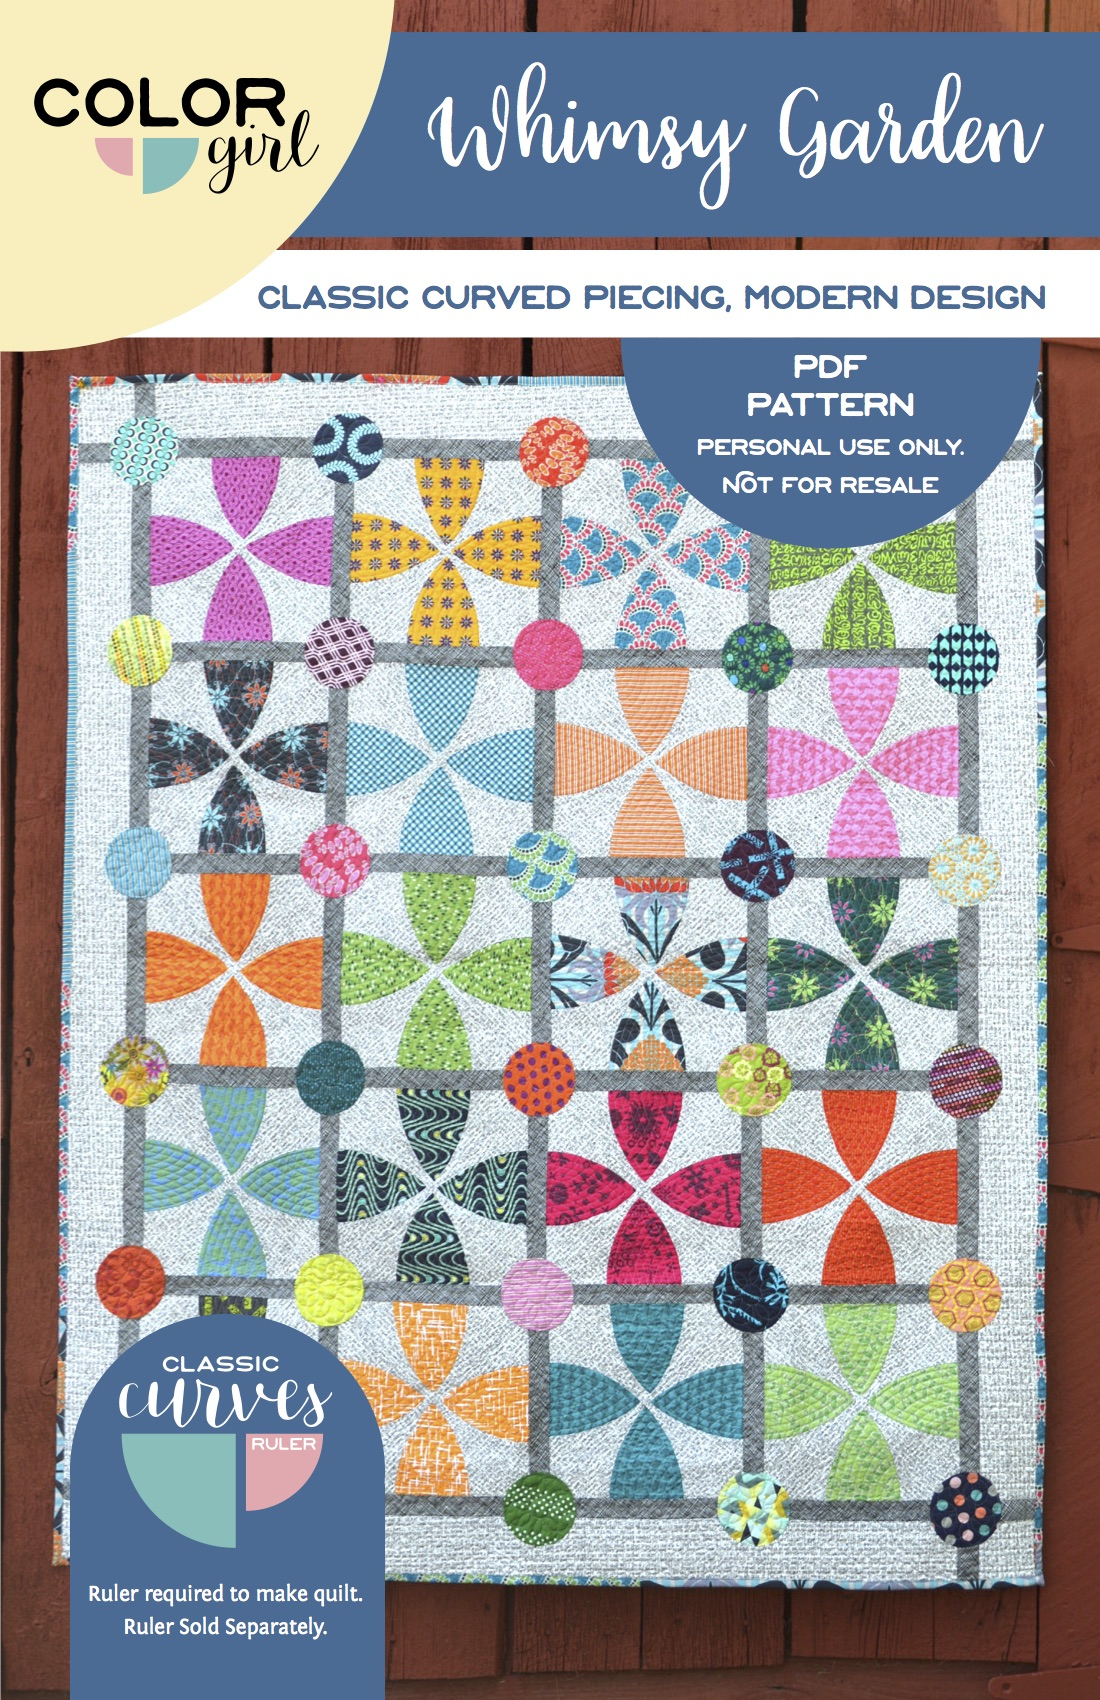 Quilt Pattern Uptown Girl : All New! Whimsy Garden with Classic Curves - Color Girl Quilts by Sharon McConnell